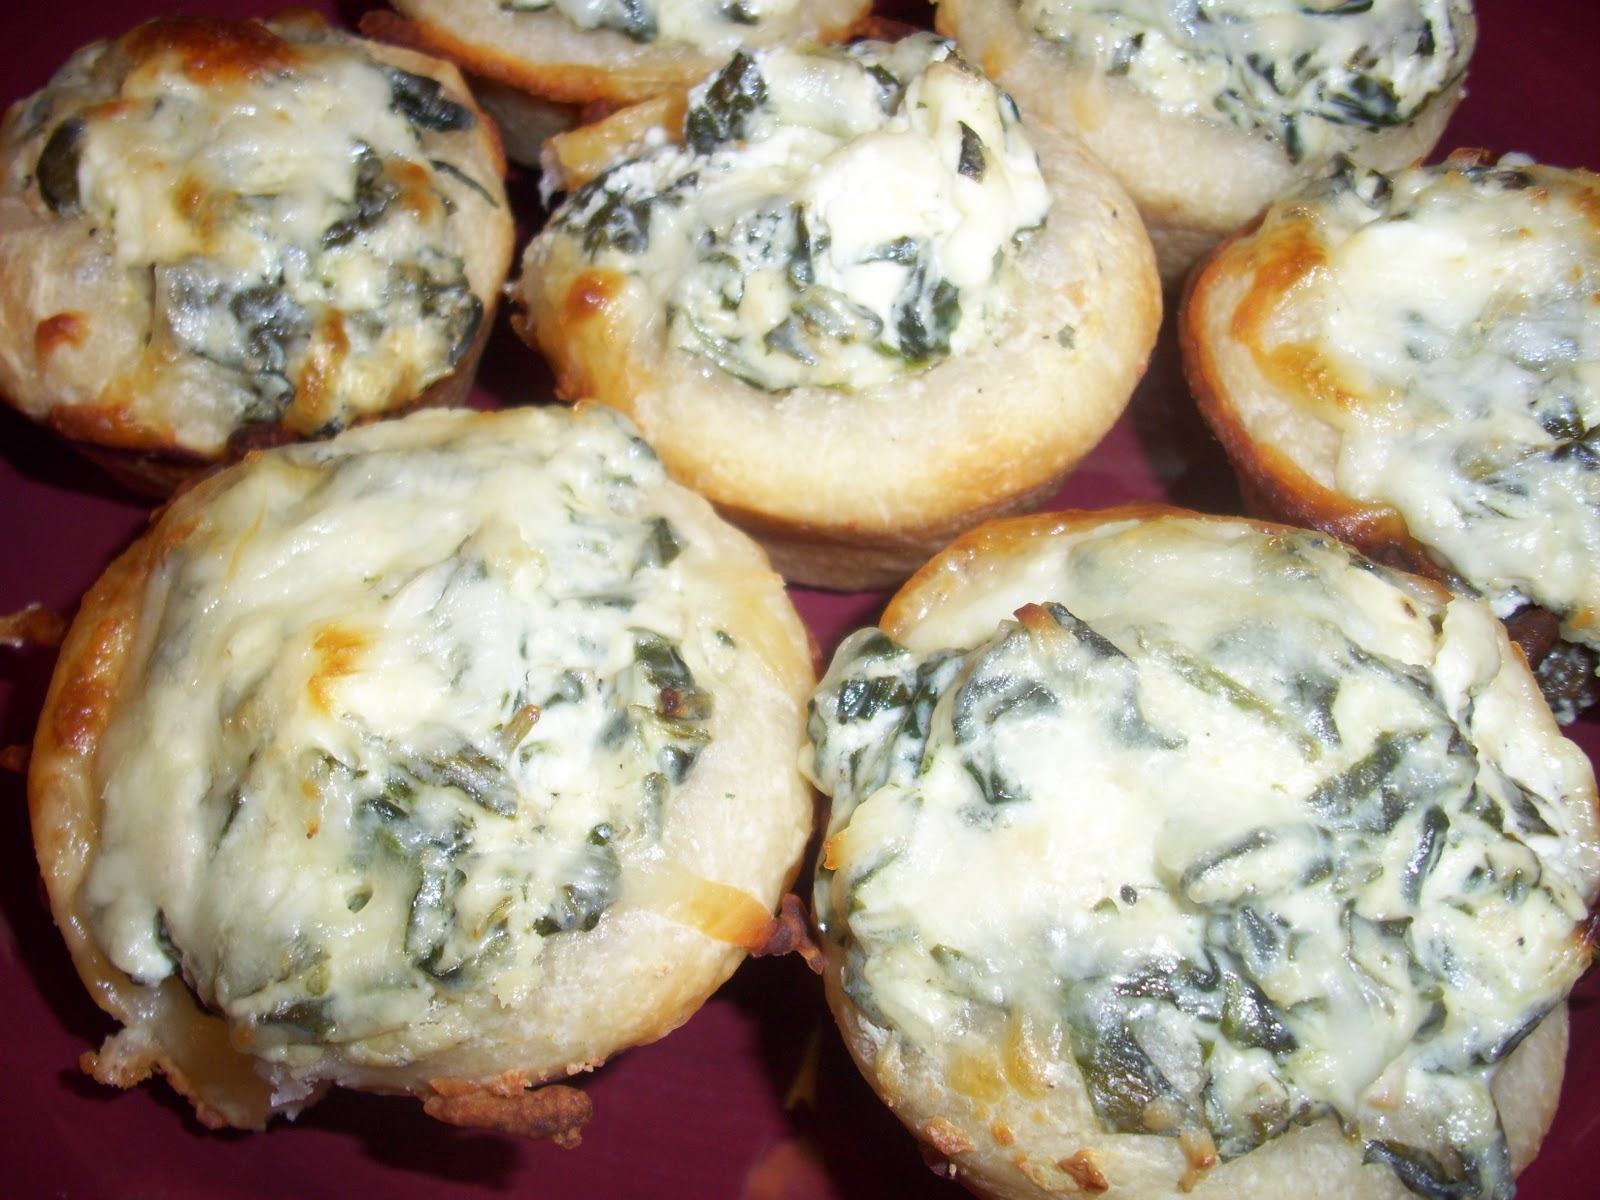 Flavors by Four: Baked Spinach Dip Mini Bread Bowls